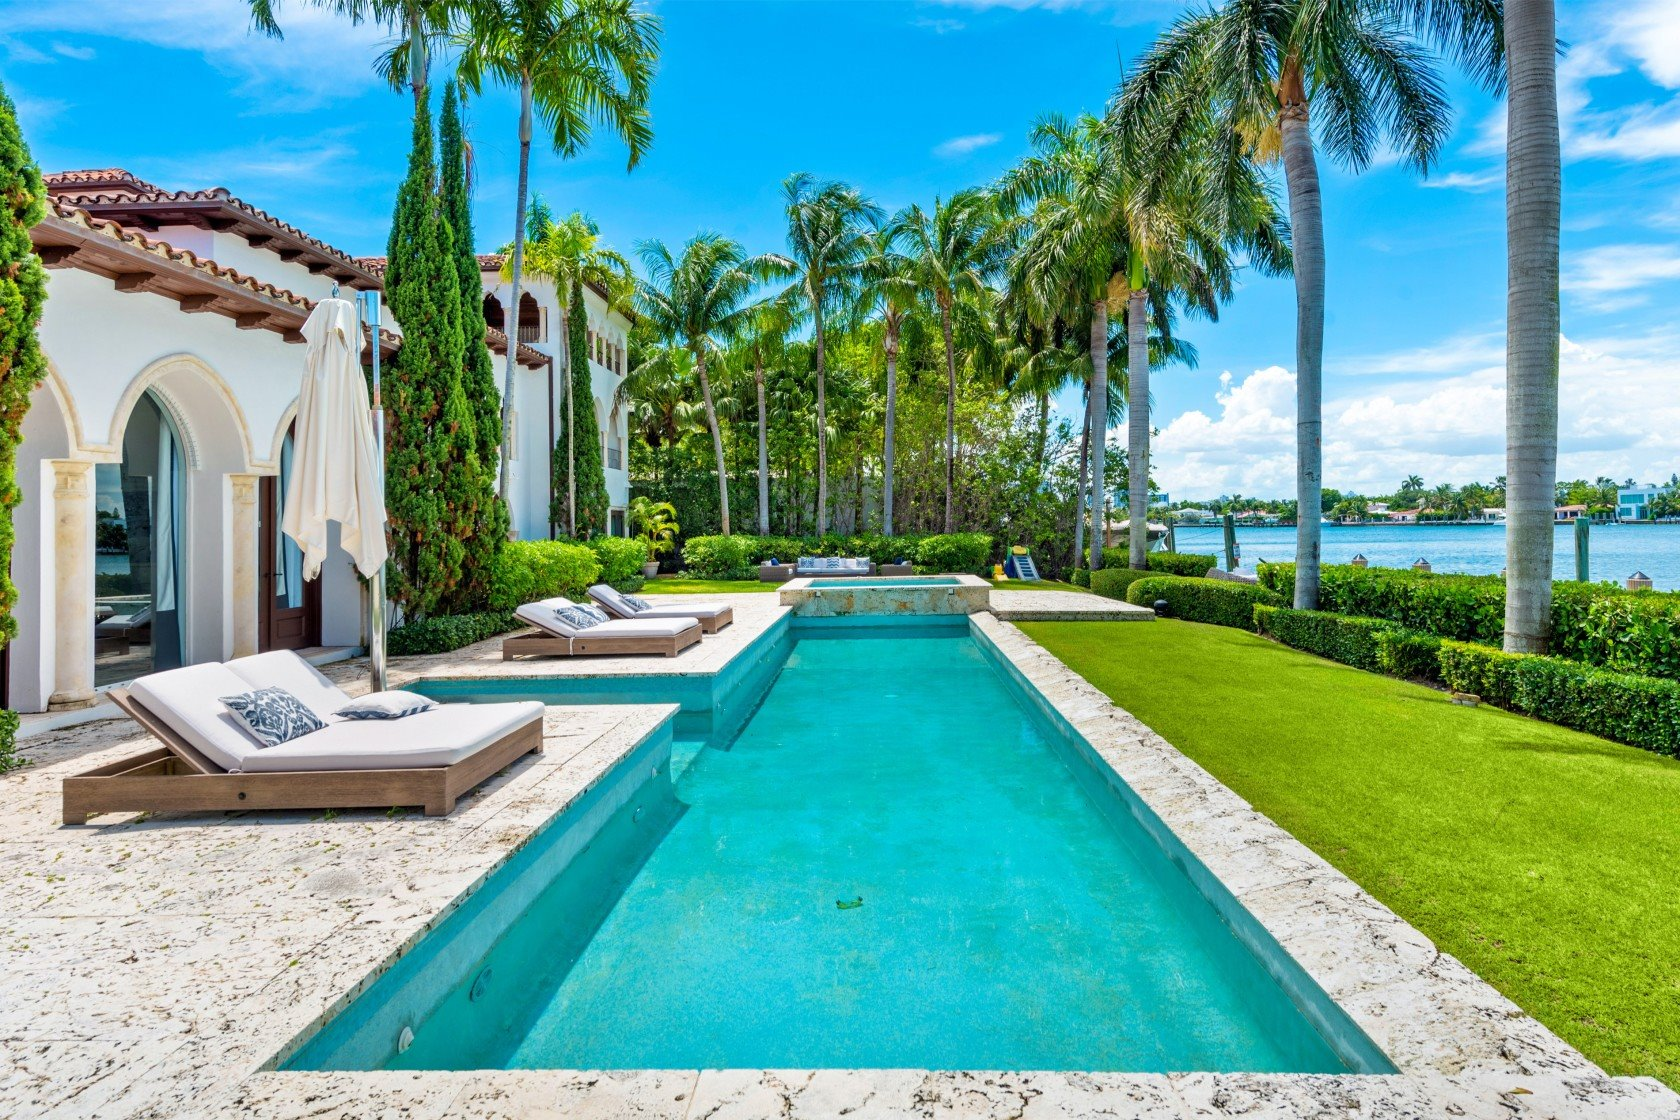 mansion Cher Miami Beach piscina